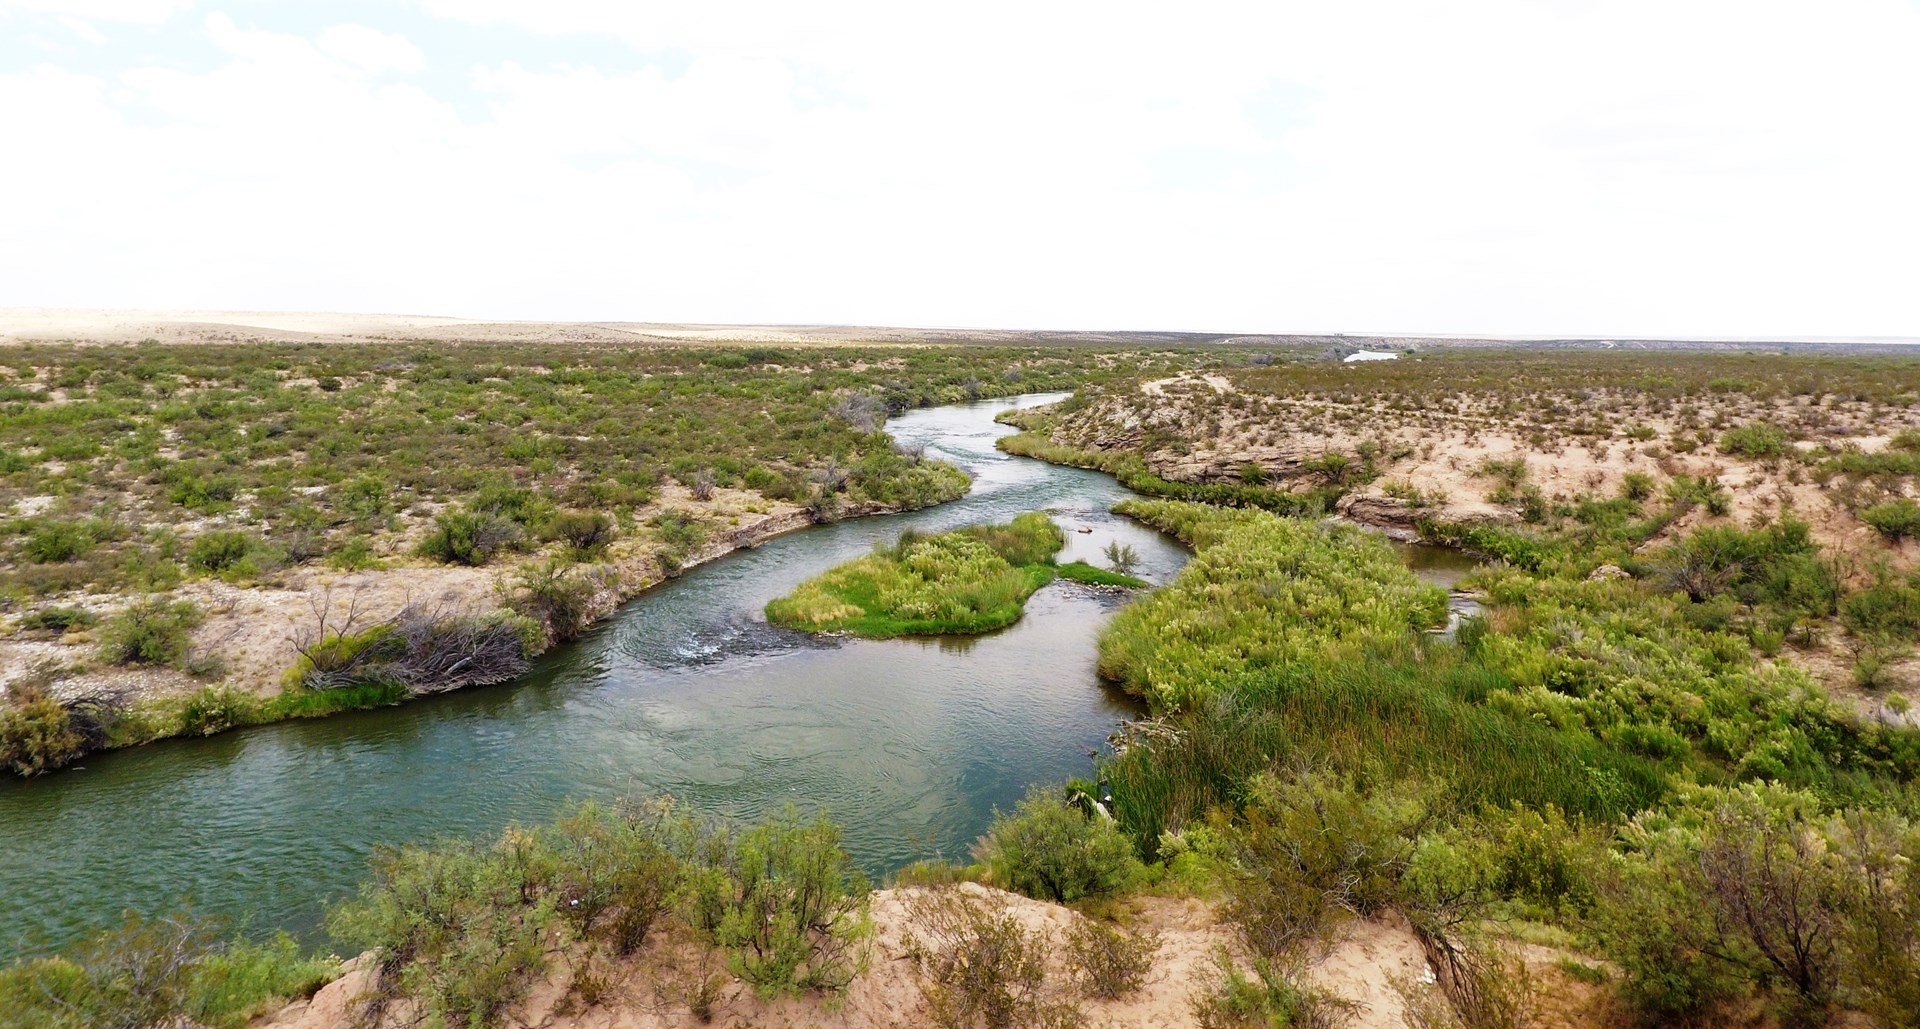 Riverfront Property For Sale Near Carlsbad NM & PecosRiver